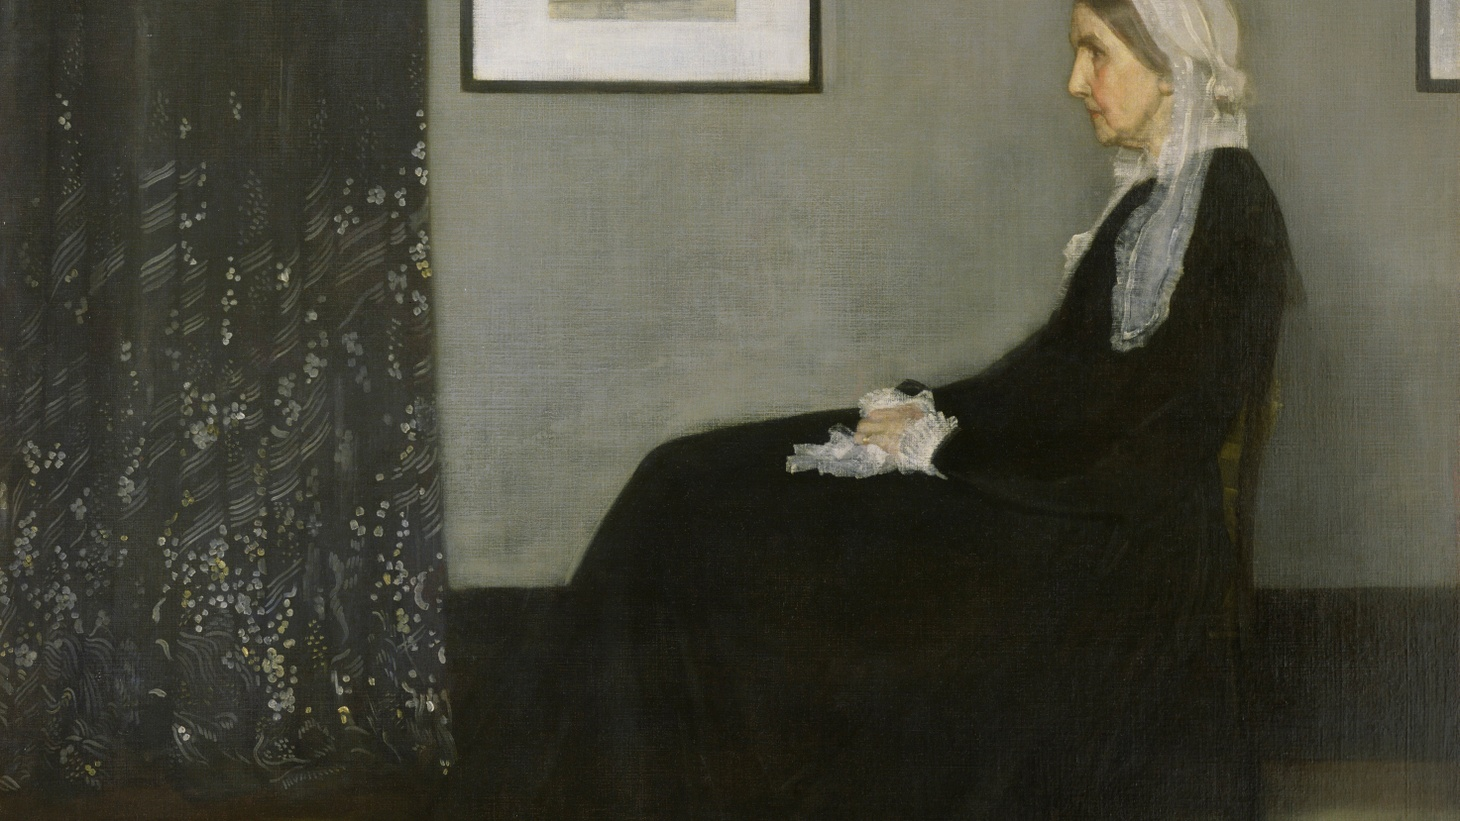 Painter James McNeill Whistler's famous 1871 portrait of his mother is currently on display at the Norton Simon Museum in Pasadena, on loan from the Musee d'Orsay in Paris. In honor of Mother's Day    this Sunday   , we get a primer on the painting's history.